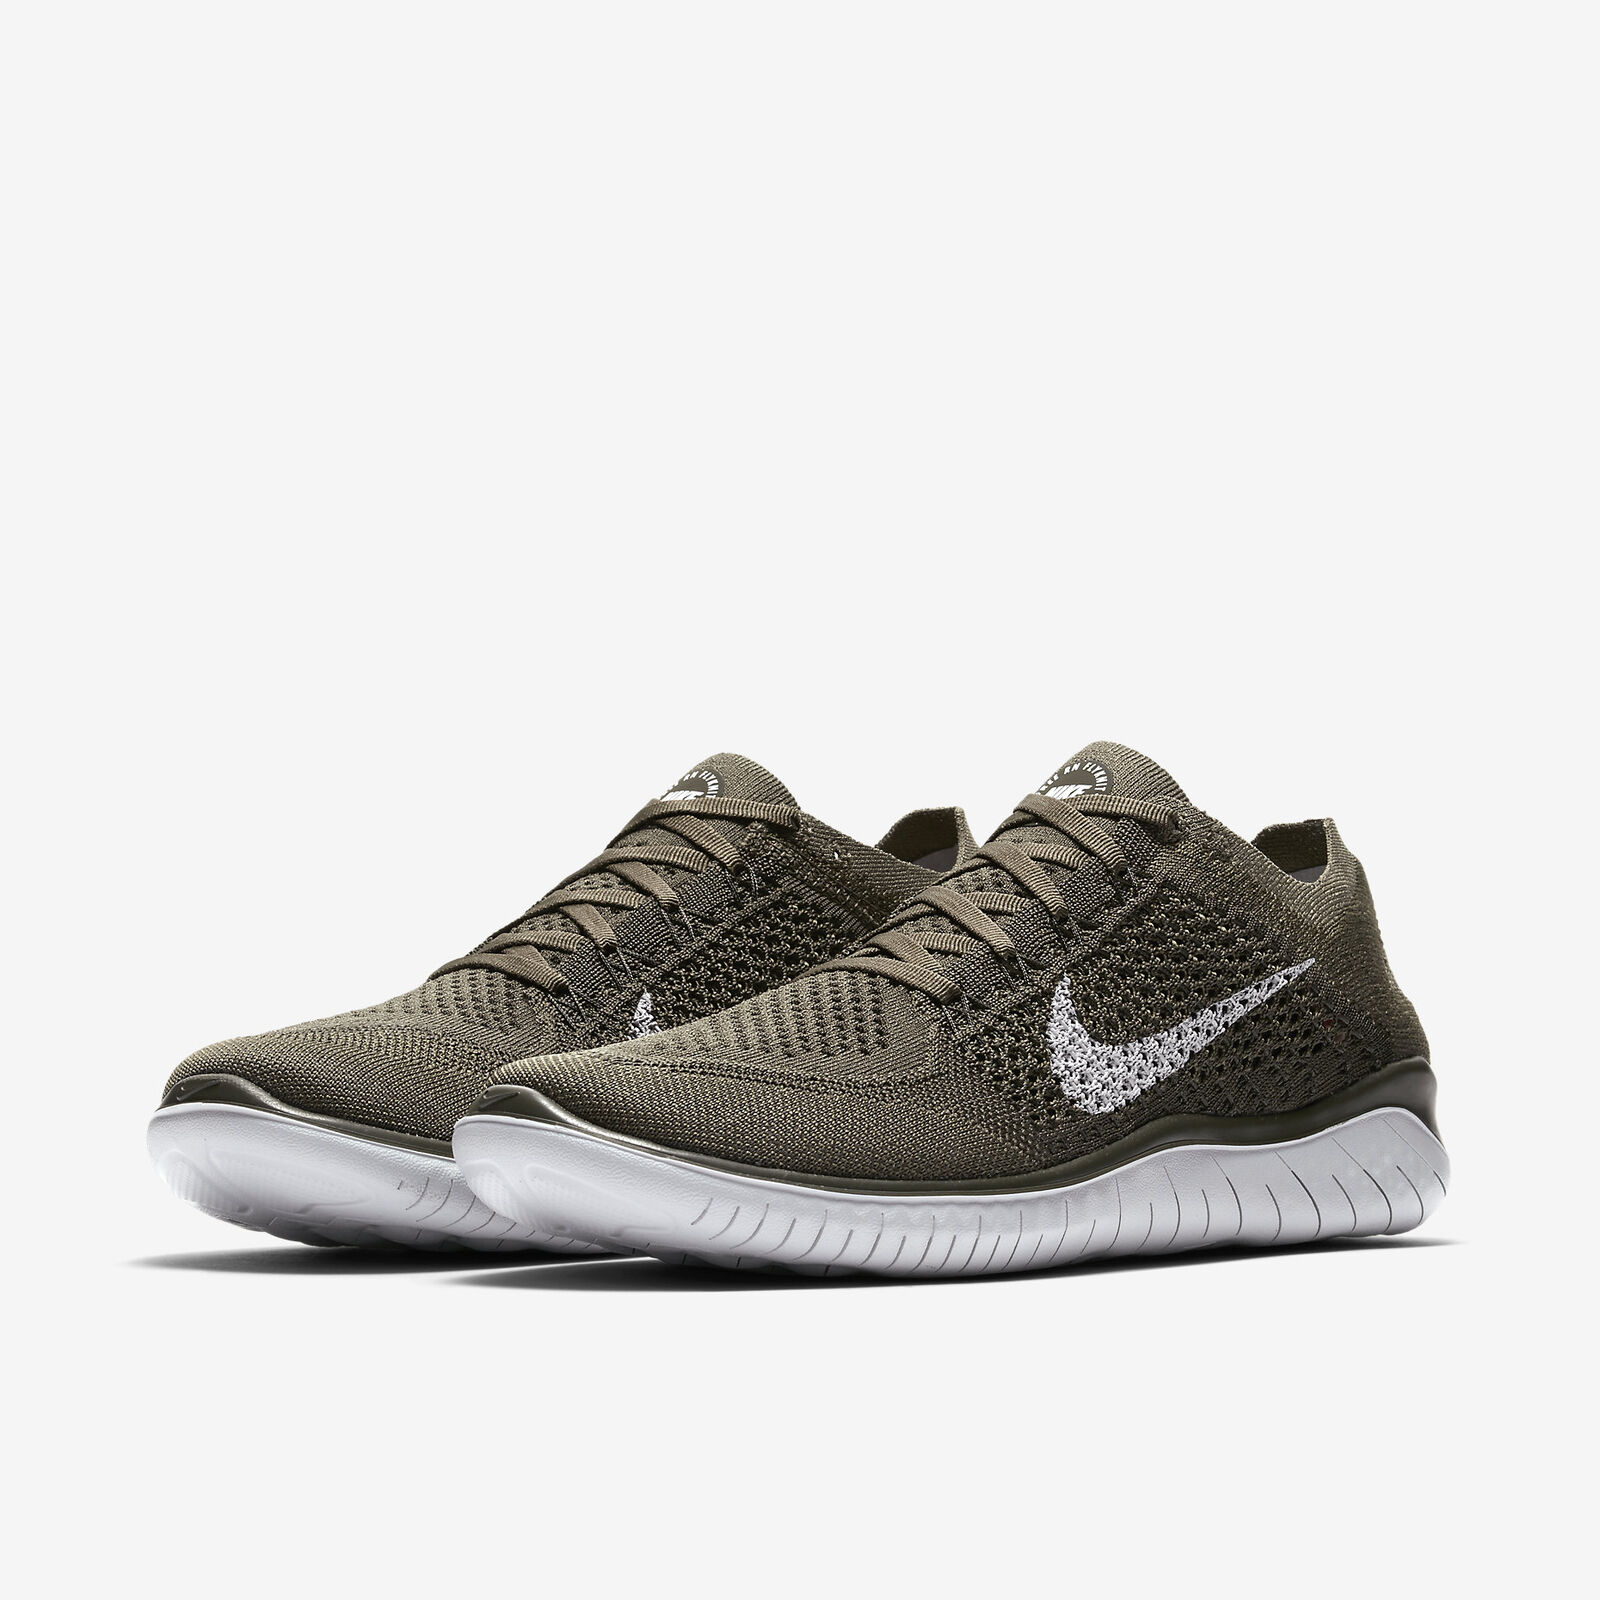 Nike Free RN Running Flyknit 2018 Cargo Khaki/Medium Olive/Sequoia Mens Running RN All NEW 7e8398